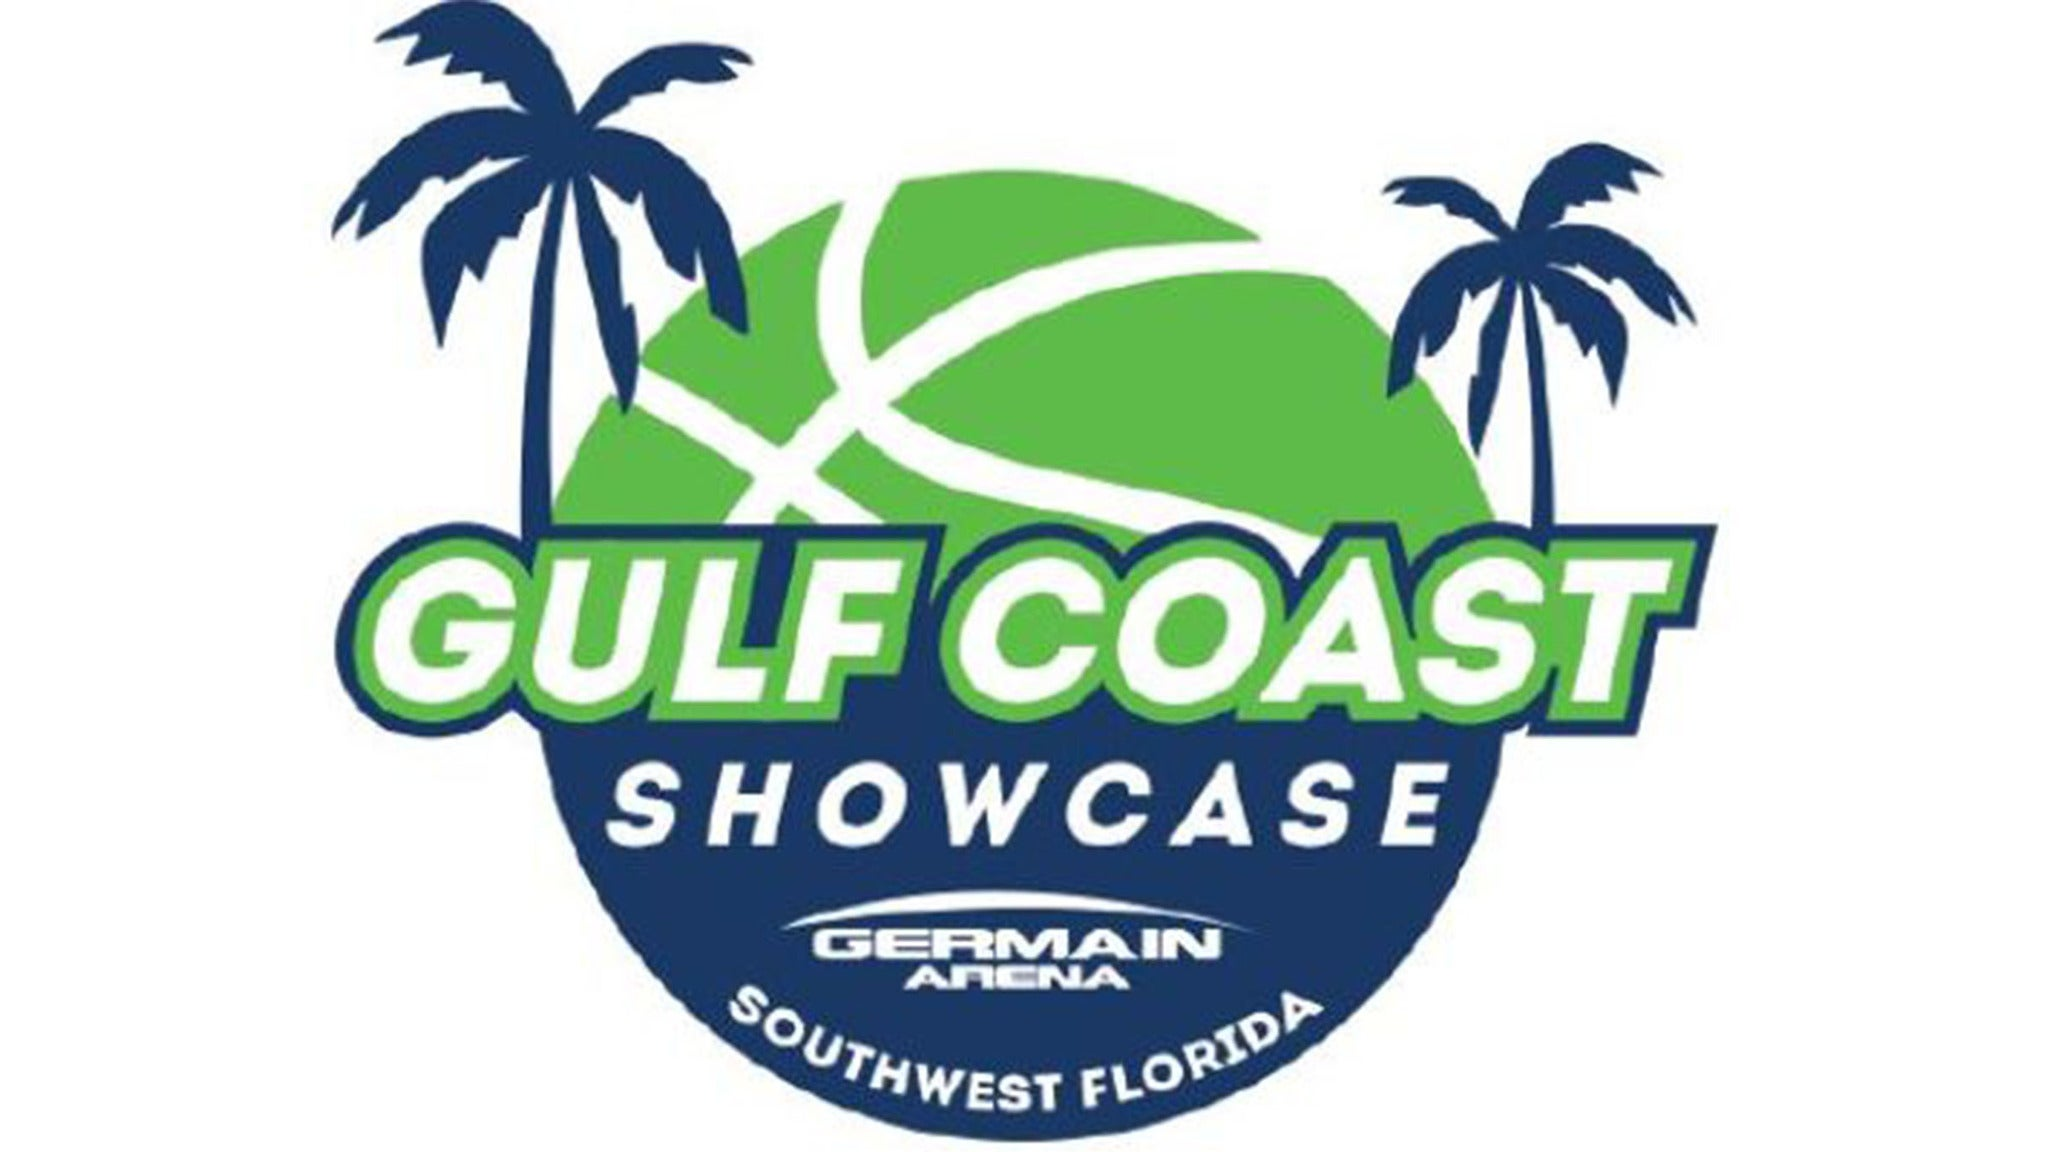 Gulf Coast Showcase - Men's Session 3 at Germain Arena - Estero, FL 33928